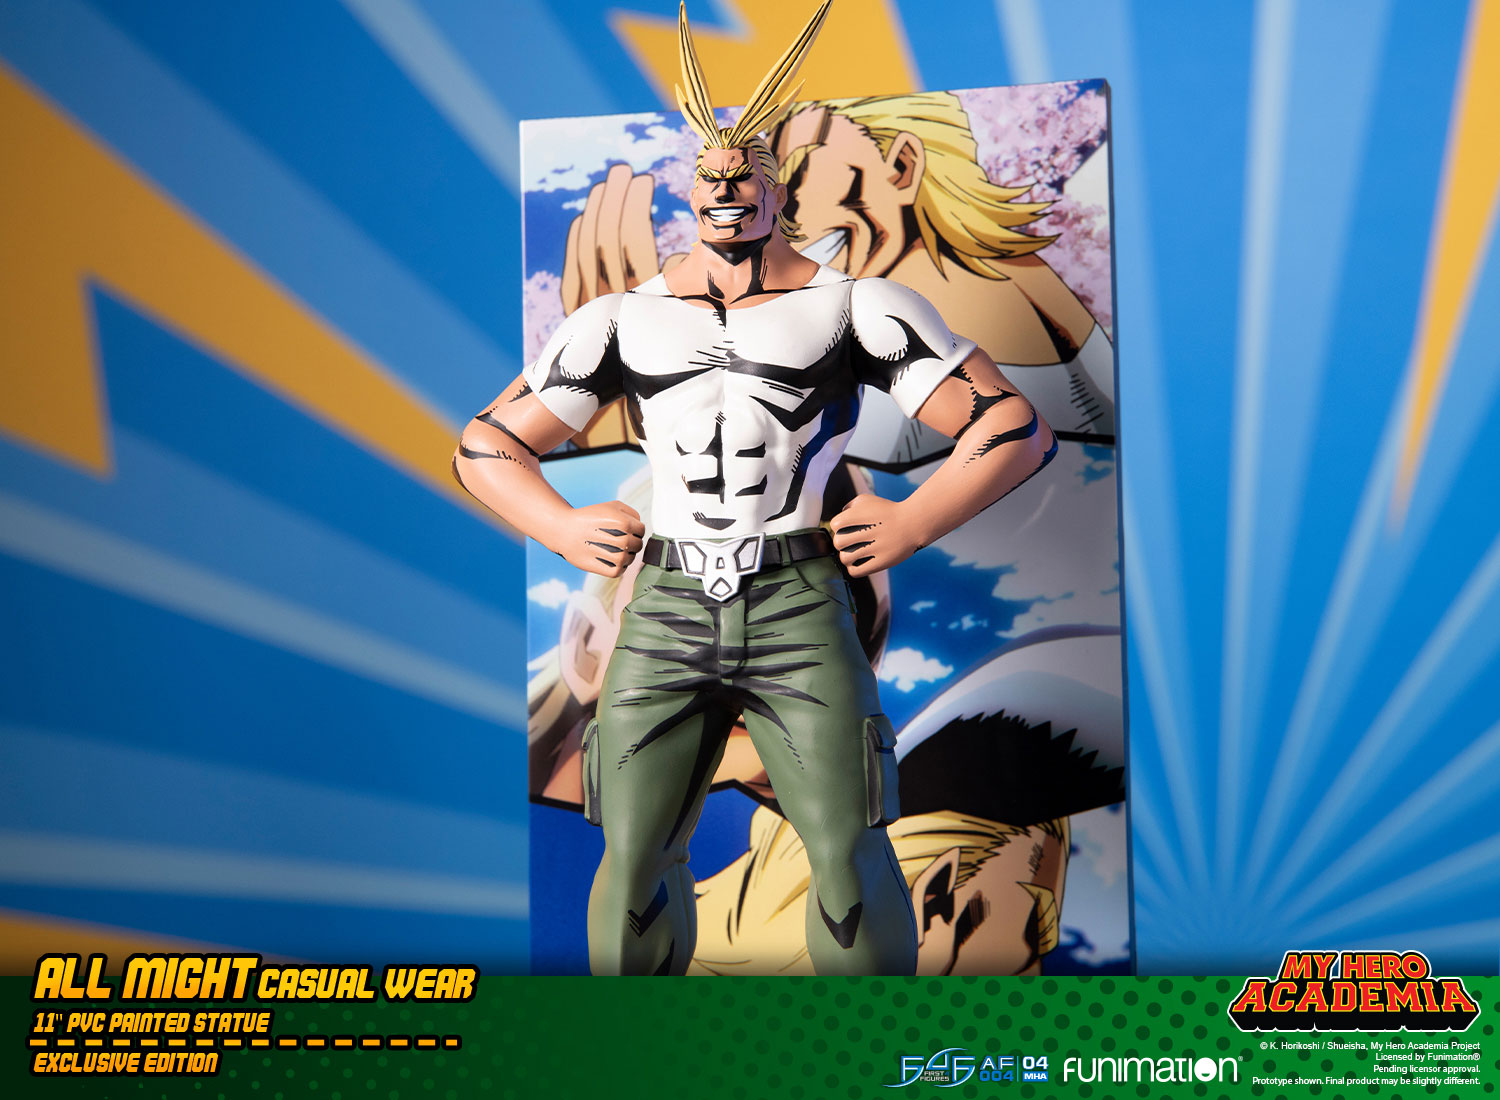 All Might: Casual Wear (Exclusive Edition)